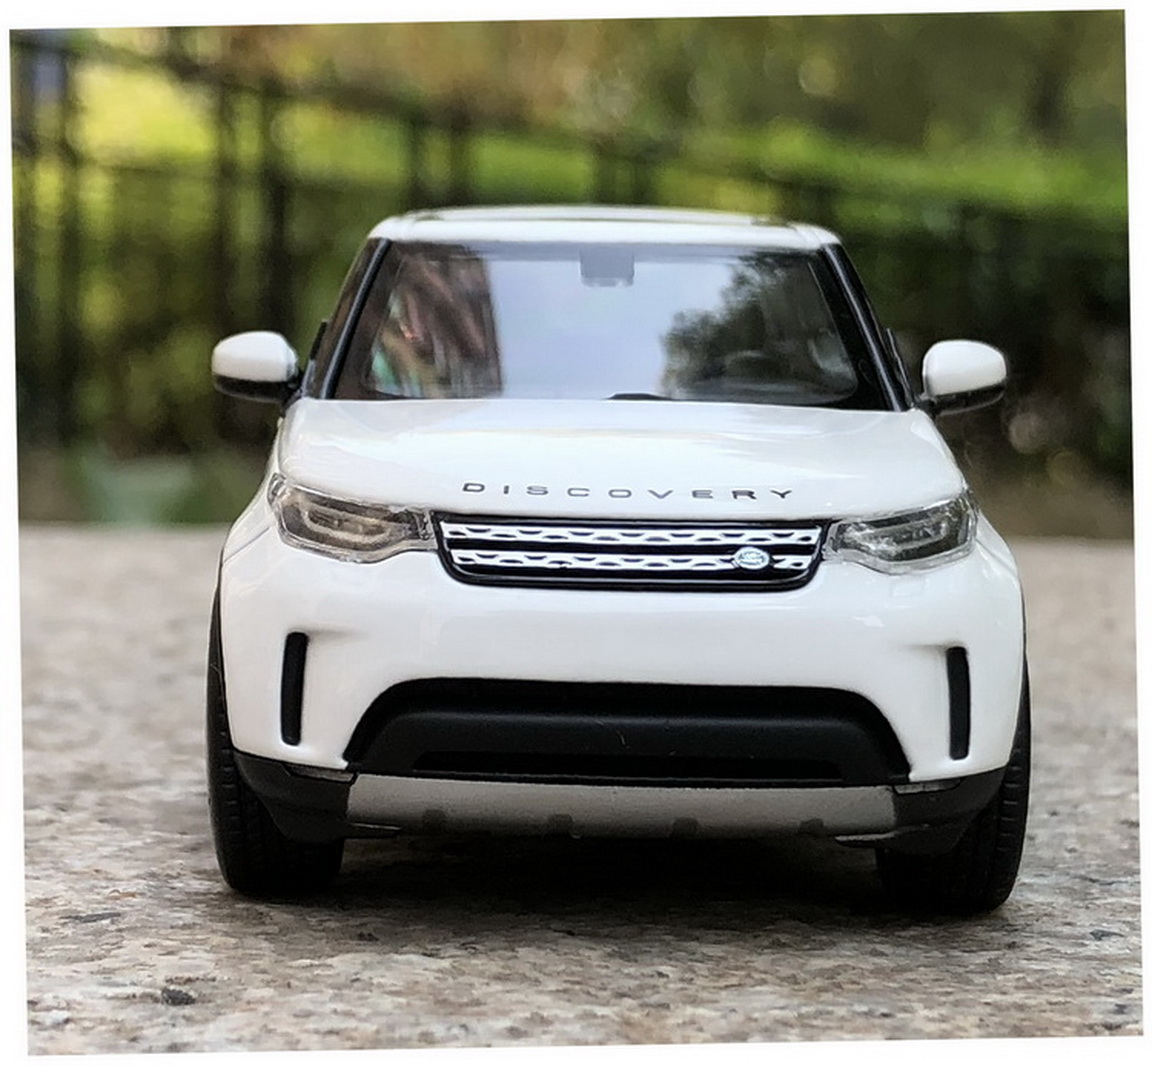 1//43 Land Rover Discovery 5 white Diecast Car Model Collection